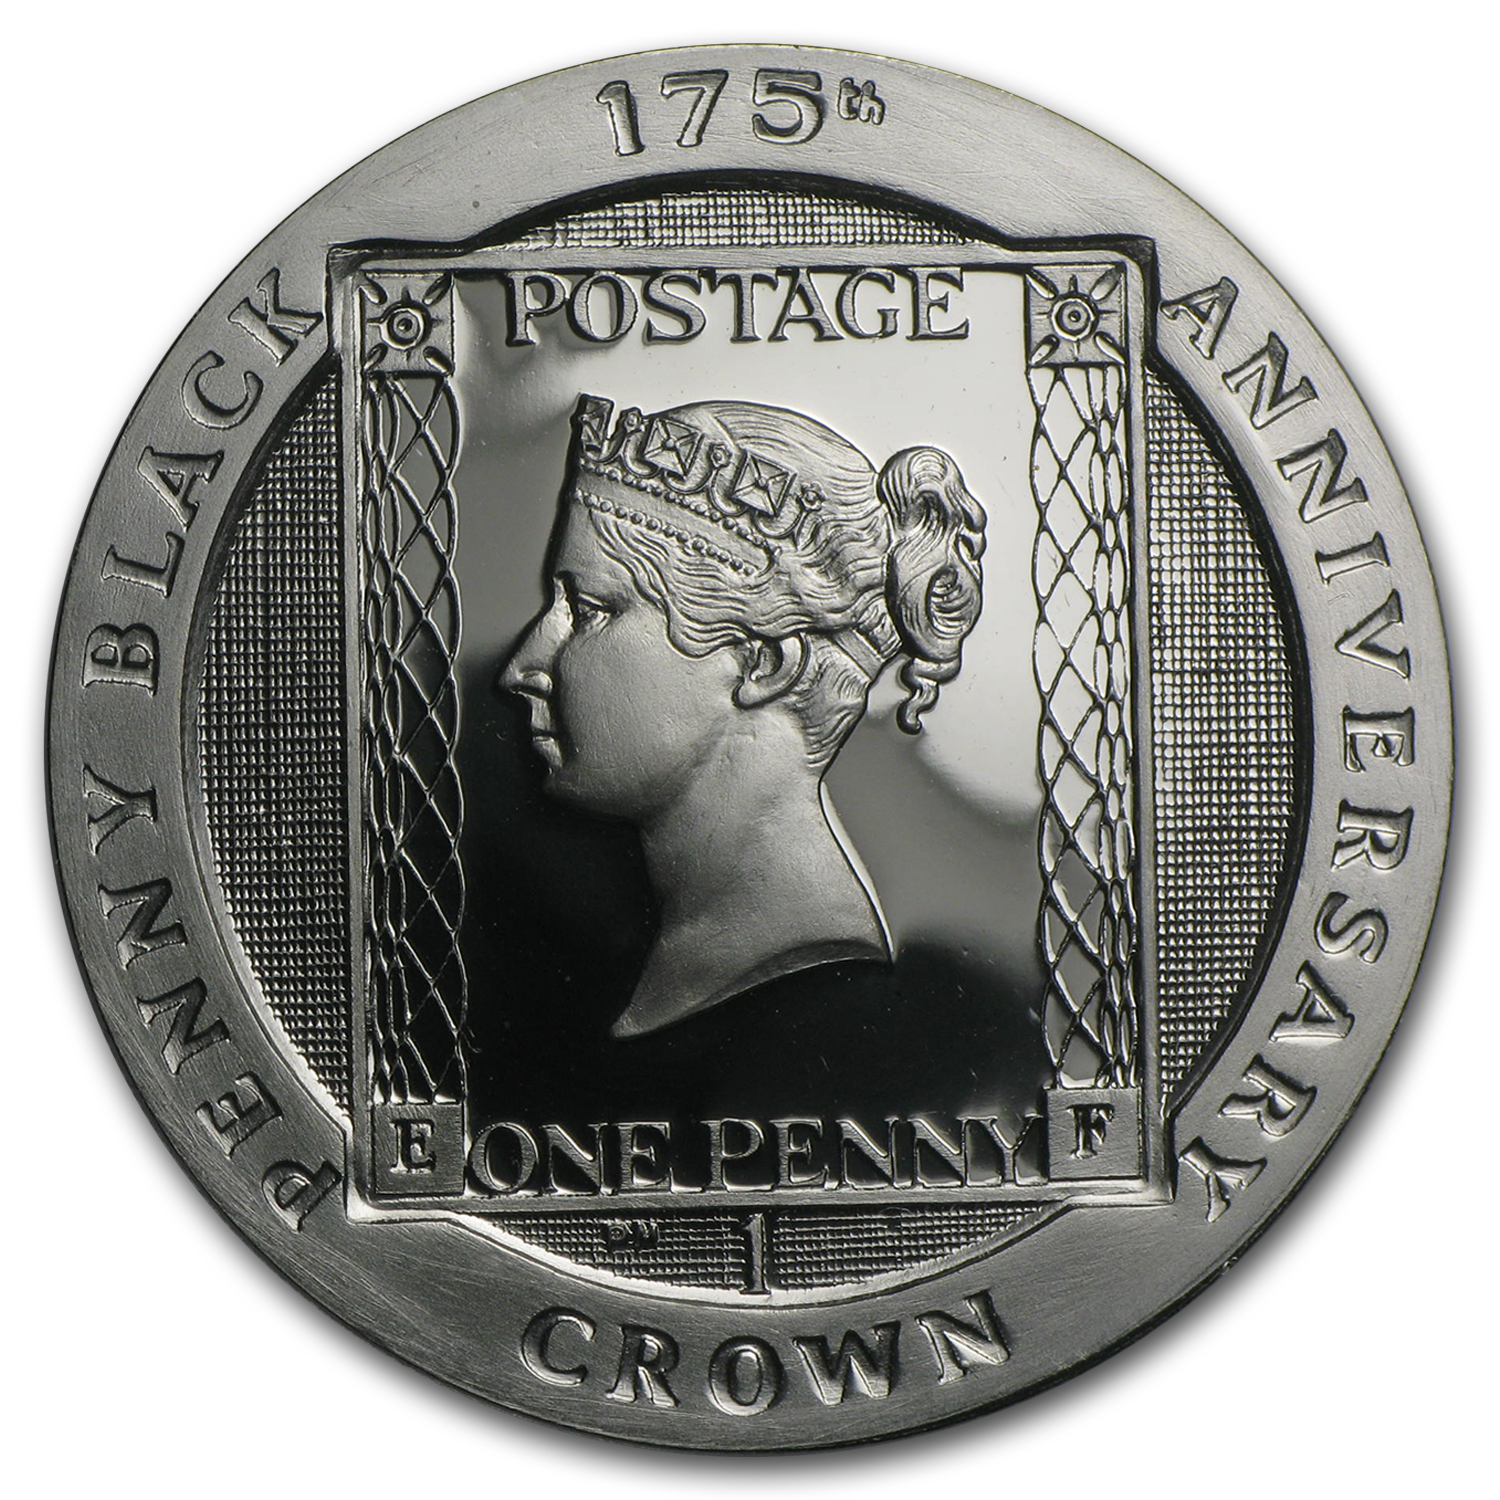 2015 Isle of Man Silver 1 Crown 175th Anniversary Penny Black